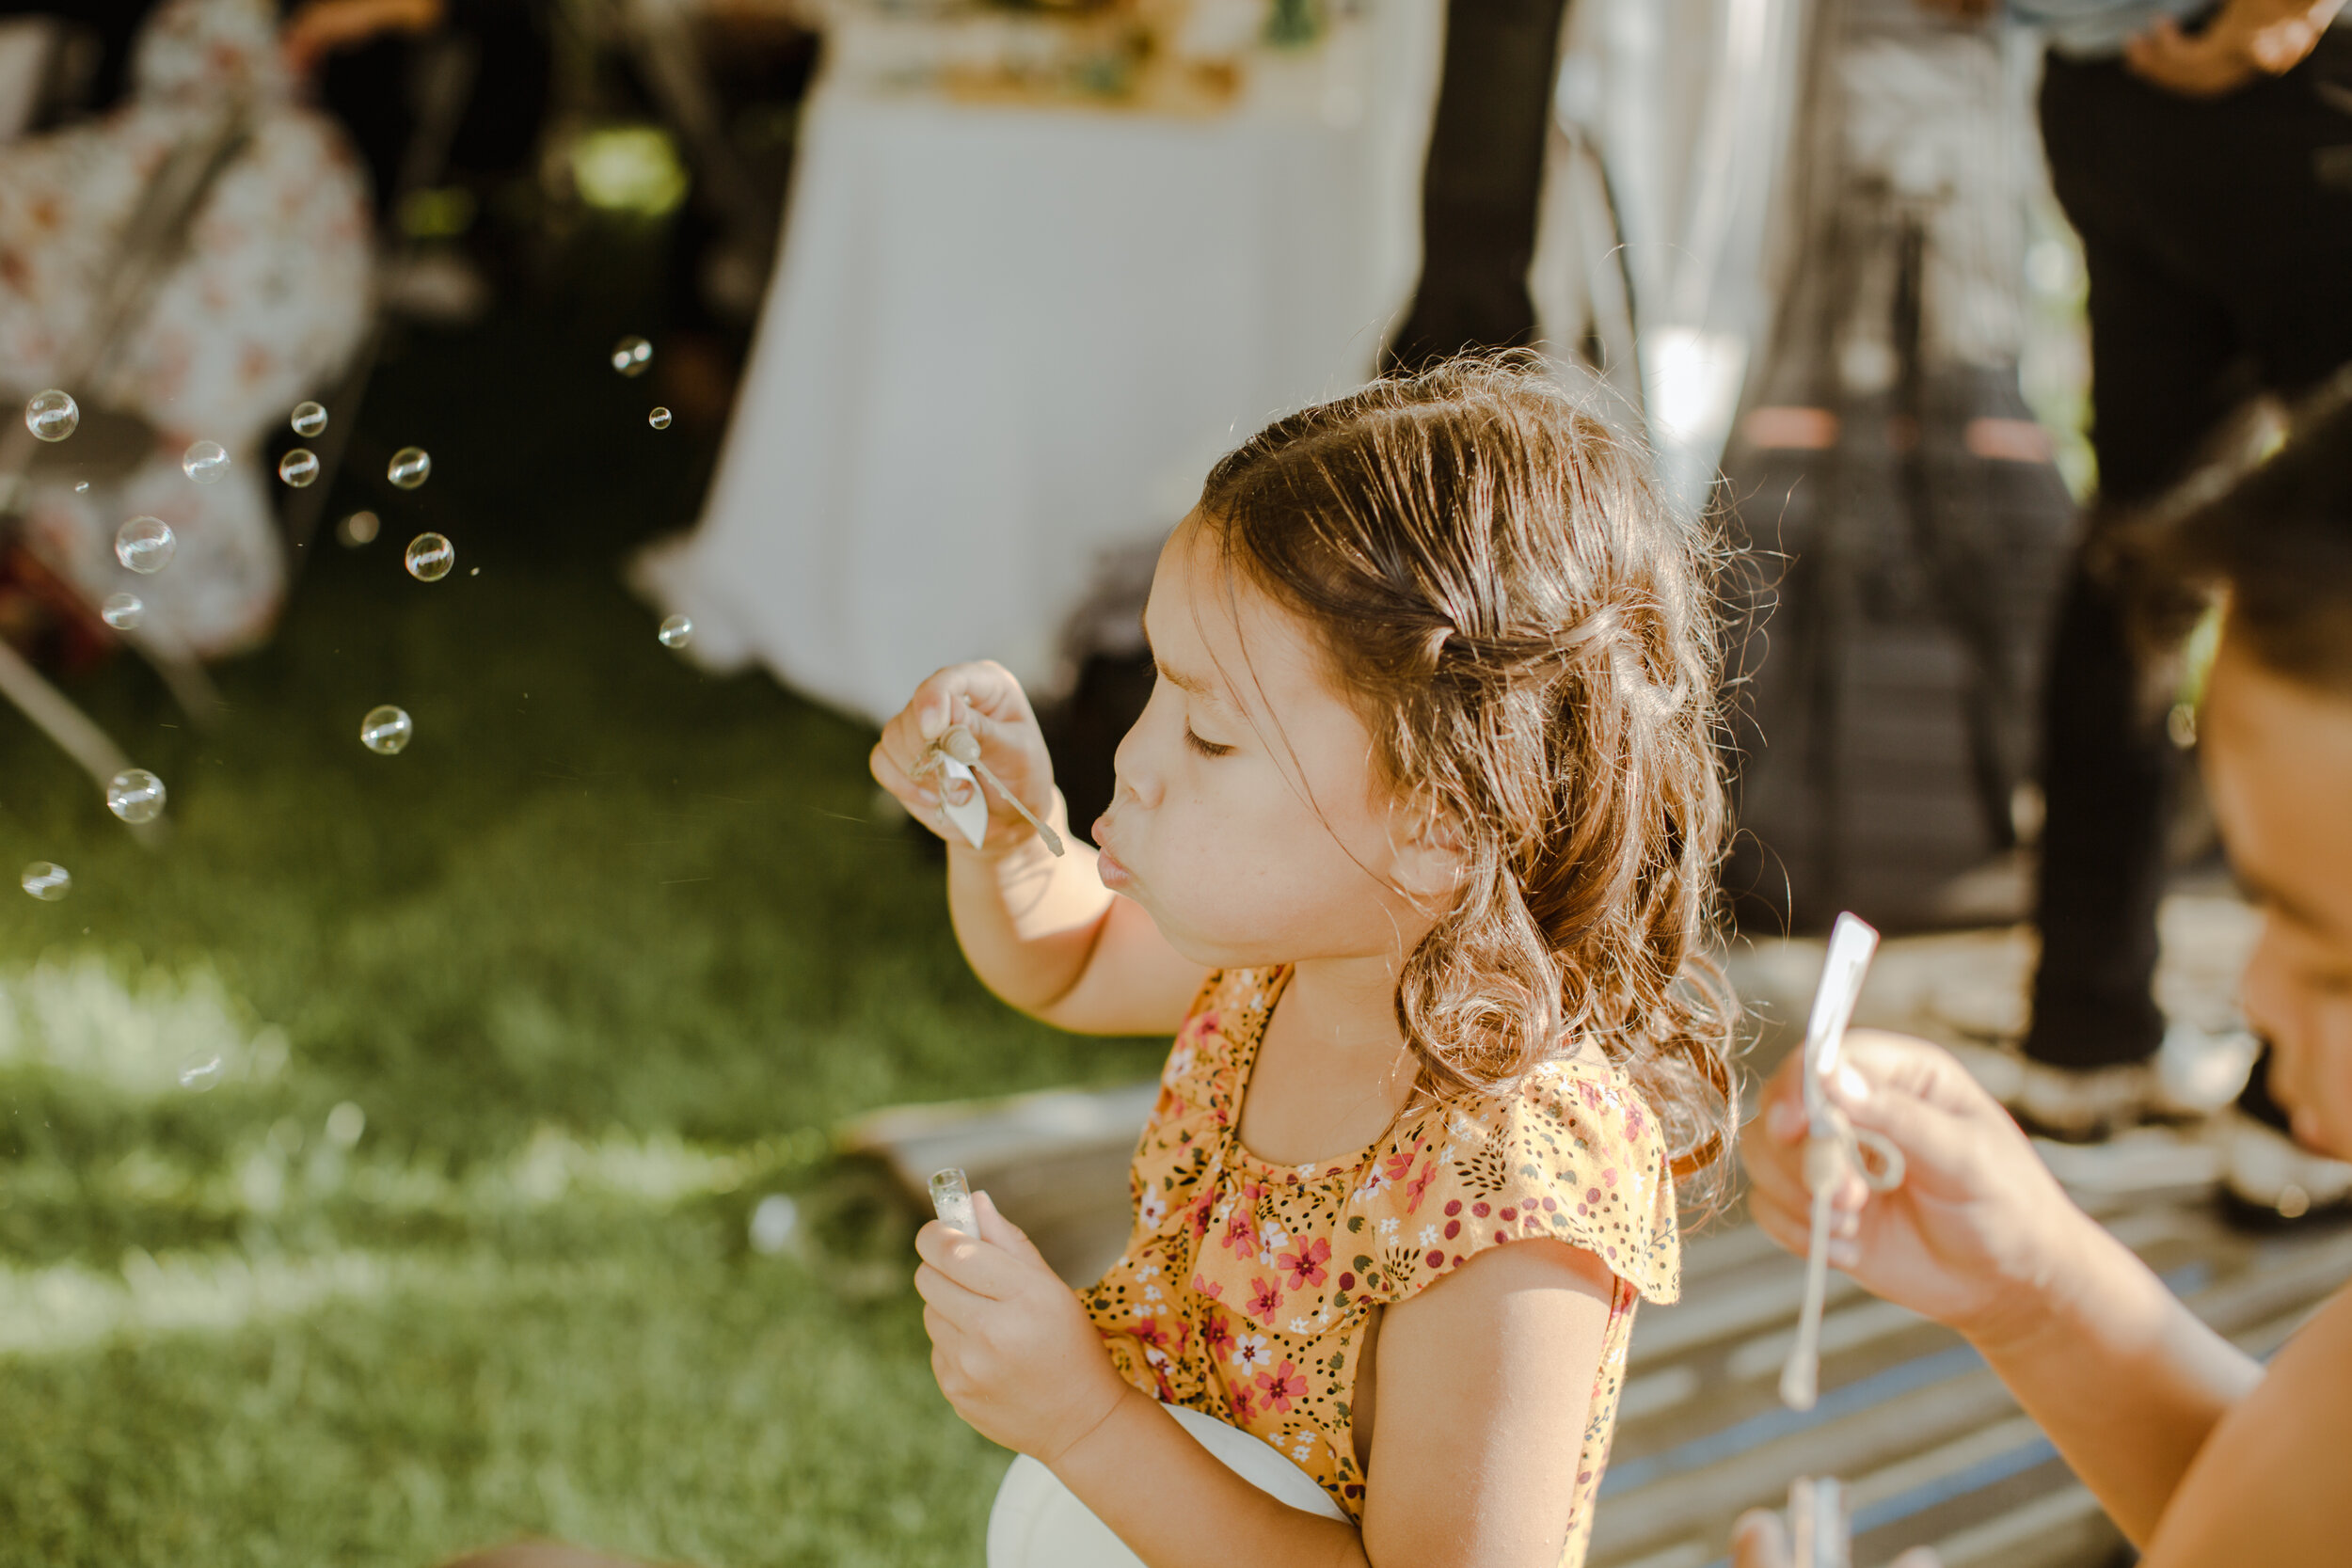 Tip #5: Bring bubbles for the kids -